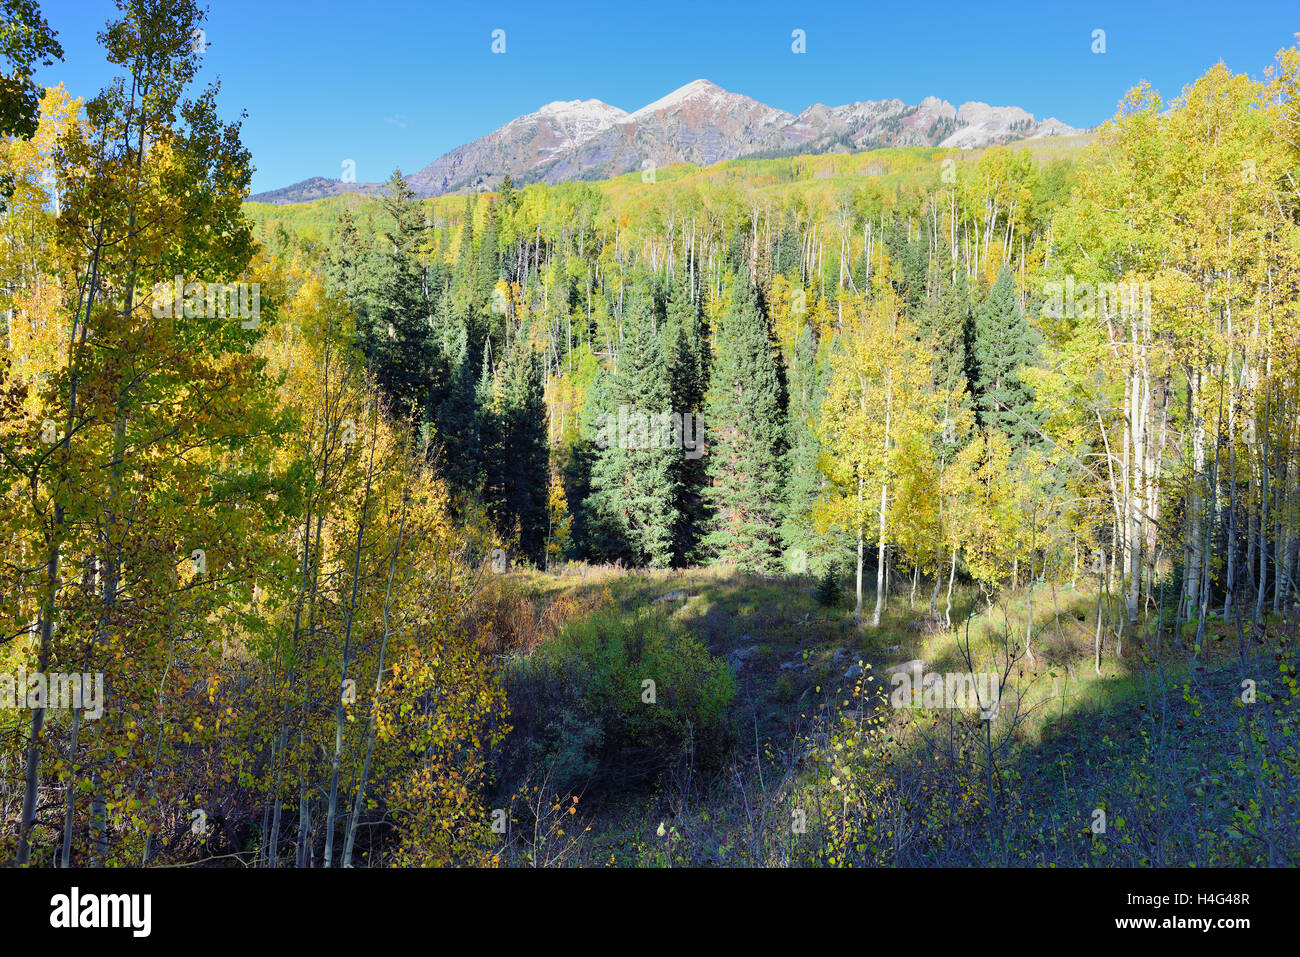 landscape view of the colorful alpine scenery with snow covered mountains during foliage season at Kebler and Ohio Stock Photo